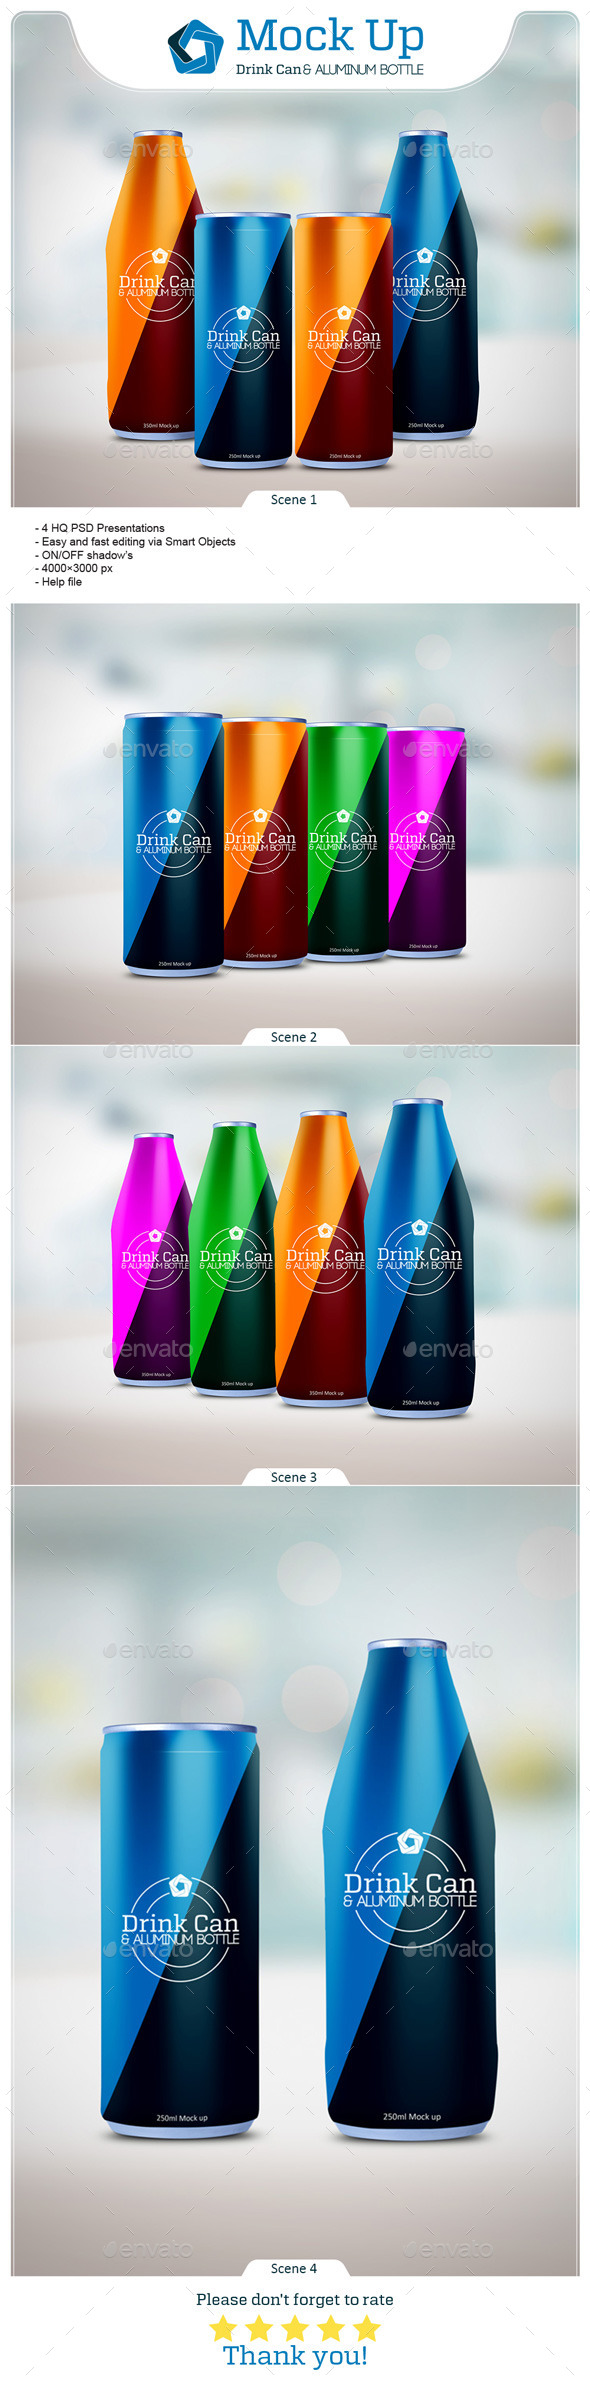 GraphicRiver Drink Can & Aluminum Bottle Mockup 10038981